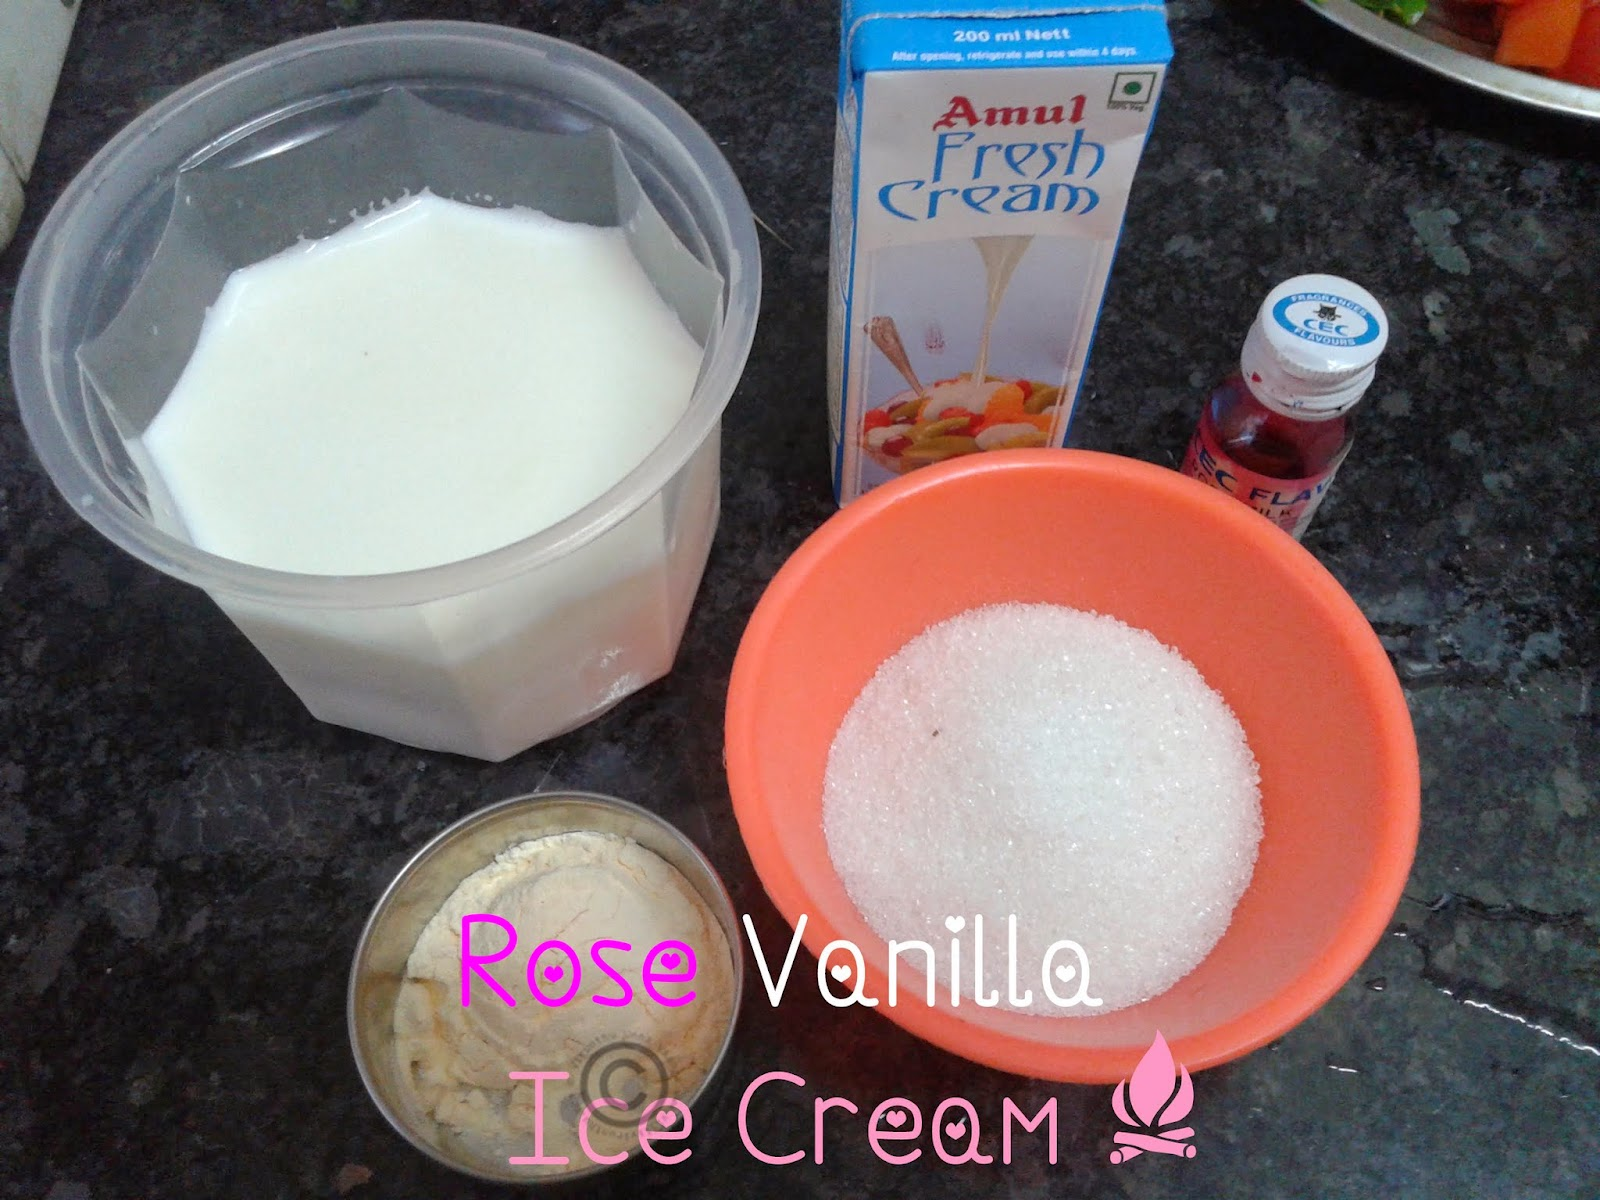 Vanilla-ice-cream